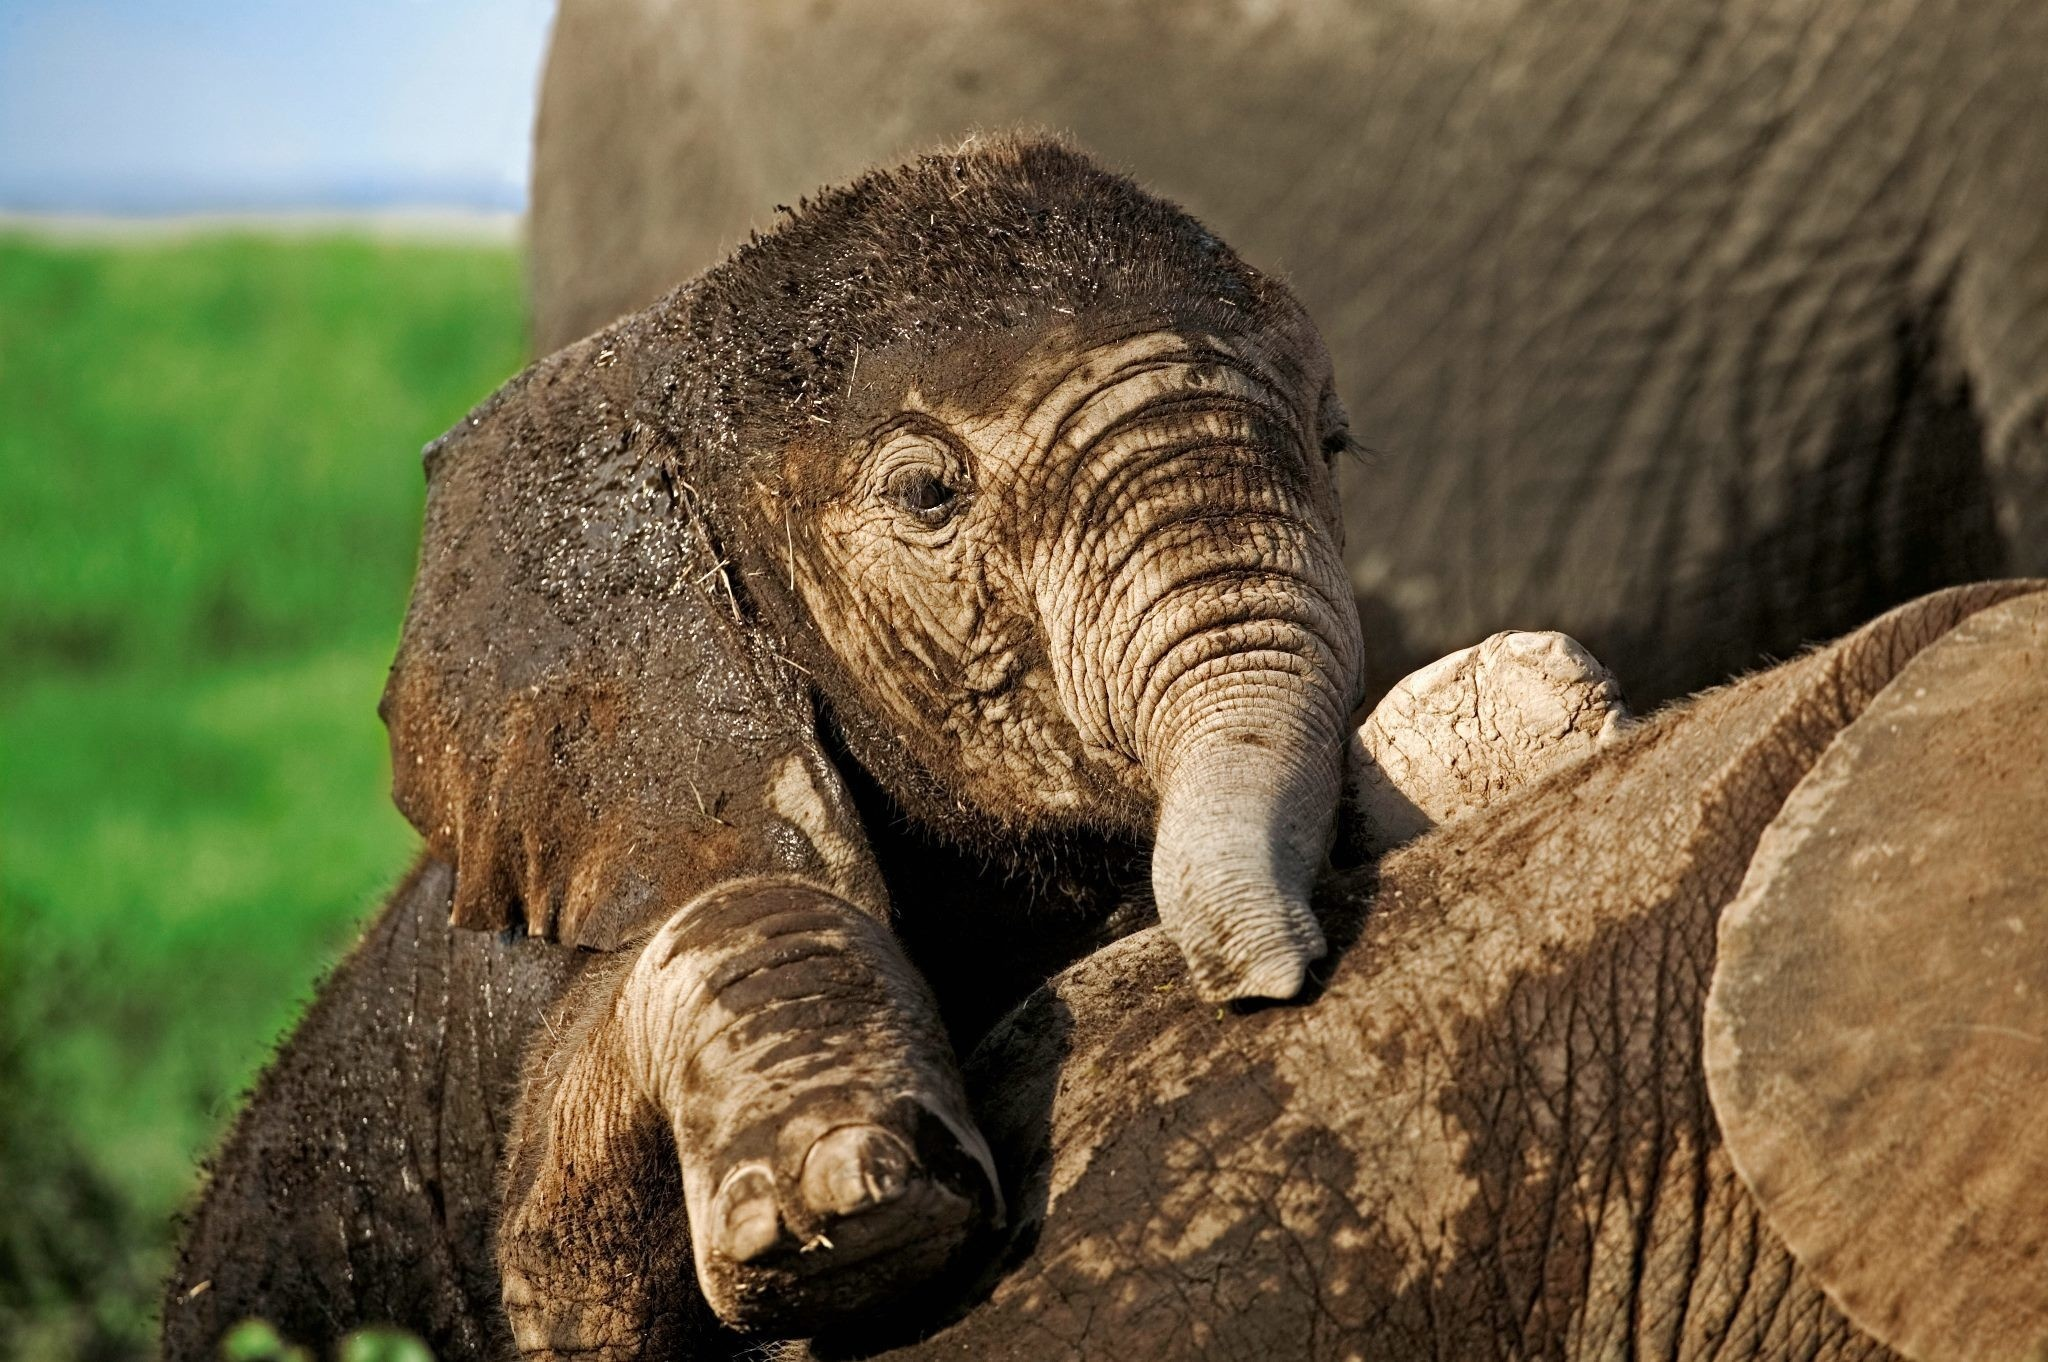 baby-elephants-learning-how-to-elephant-wallpaper-wp360714